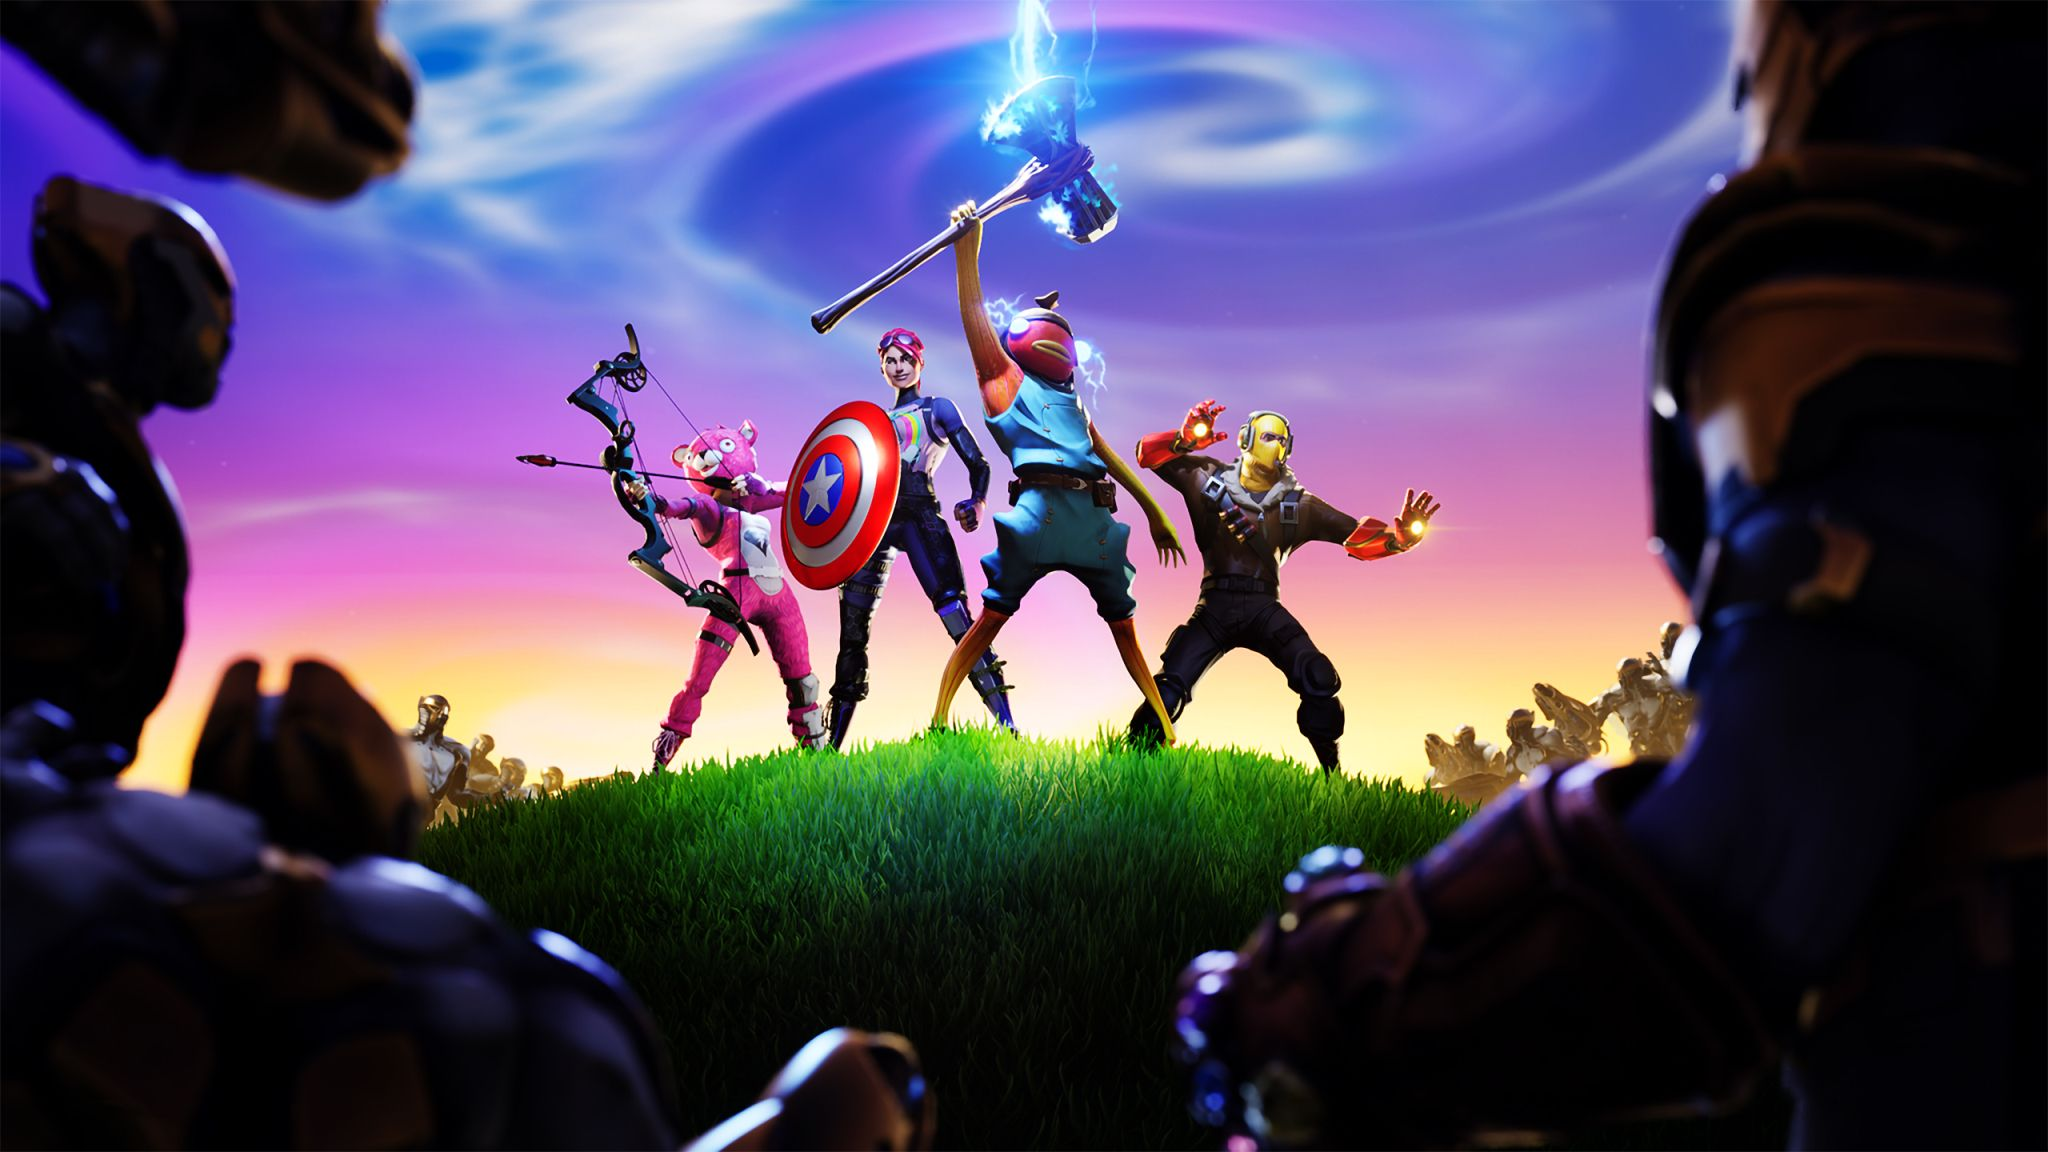 Fortnite 2048x1152 Wallpapers Top Free Fortnite 2048x1152 Backgrounds Wallpaperaccess